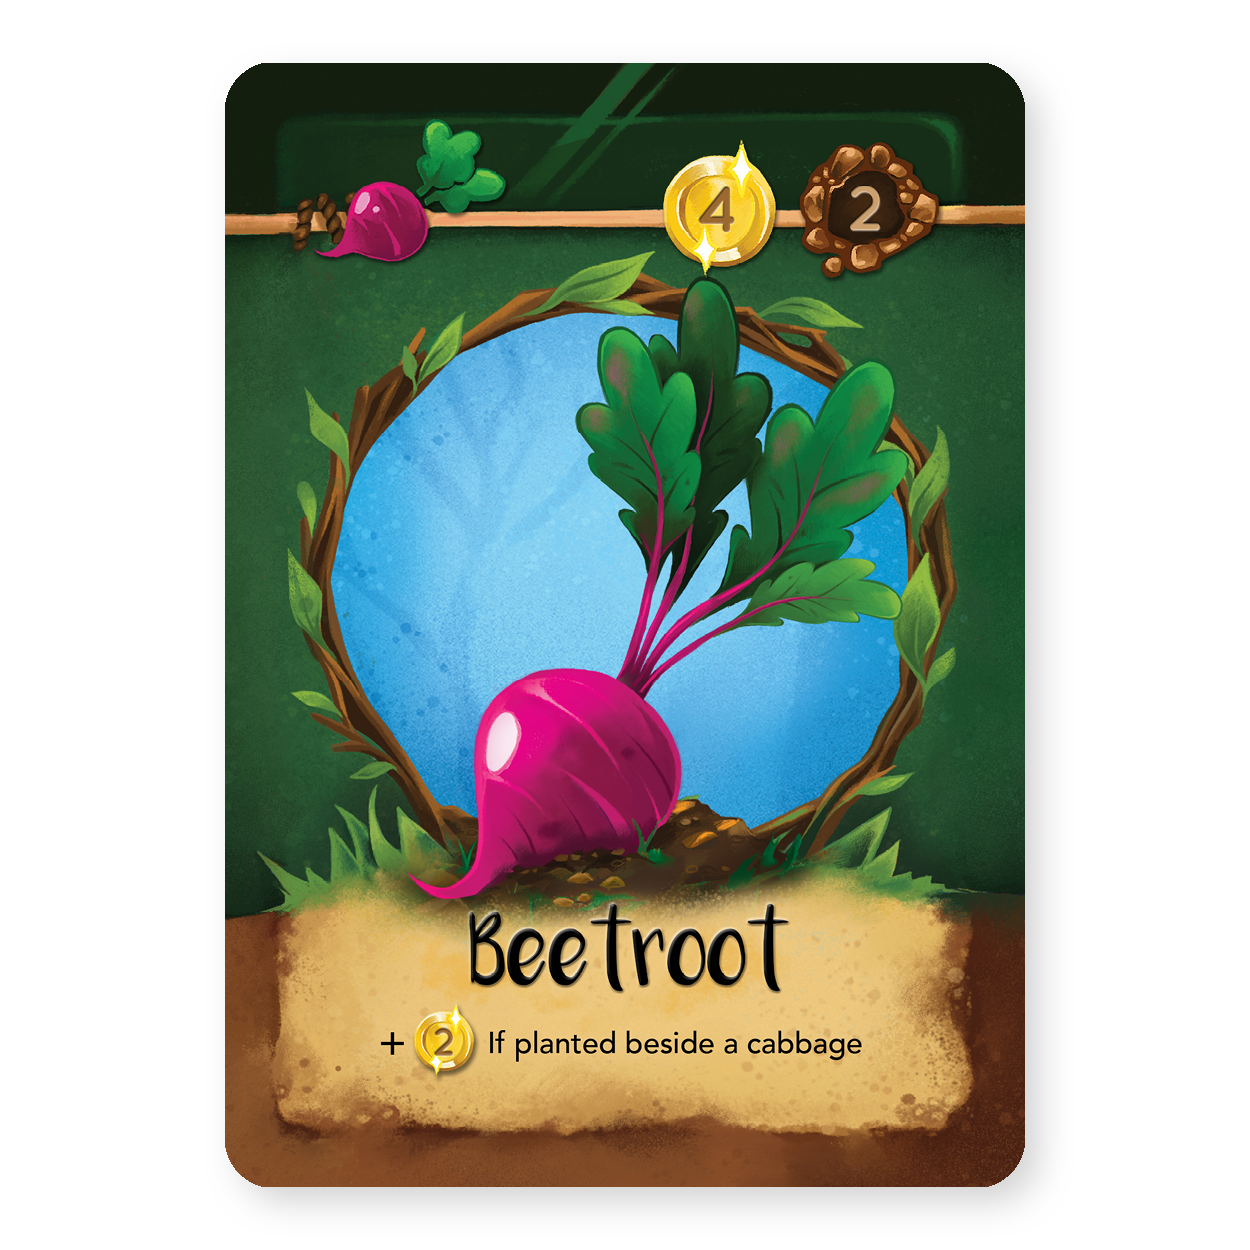 Beetroot Image courtesy of Moonstone Games